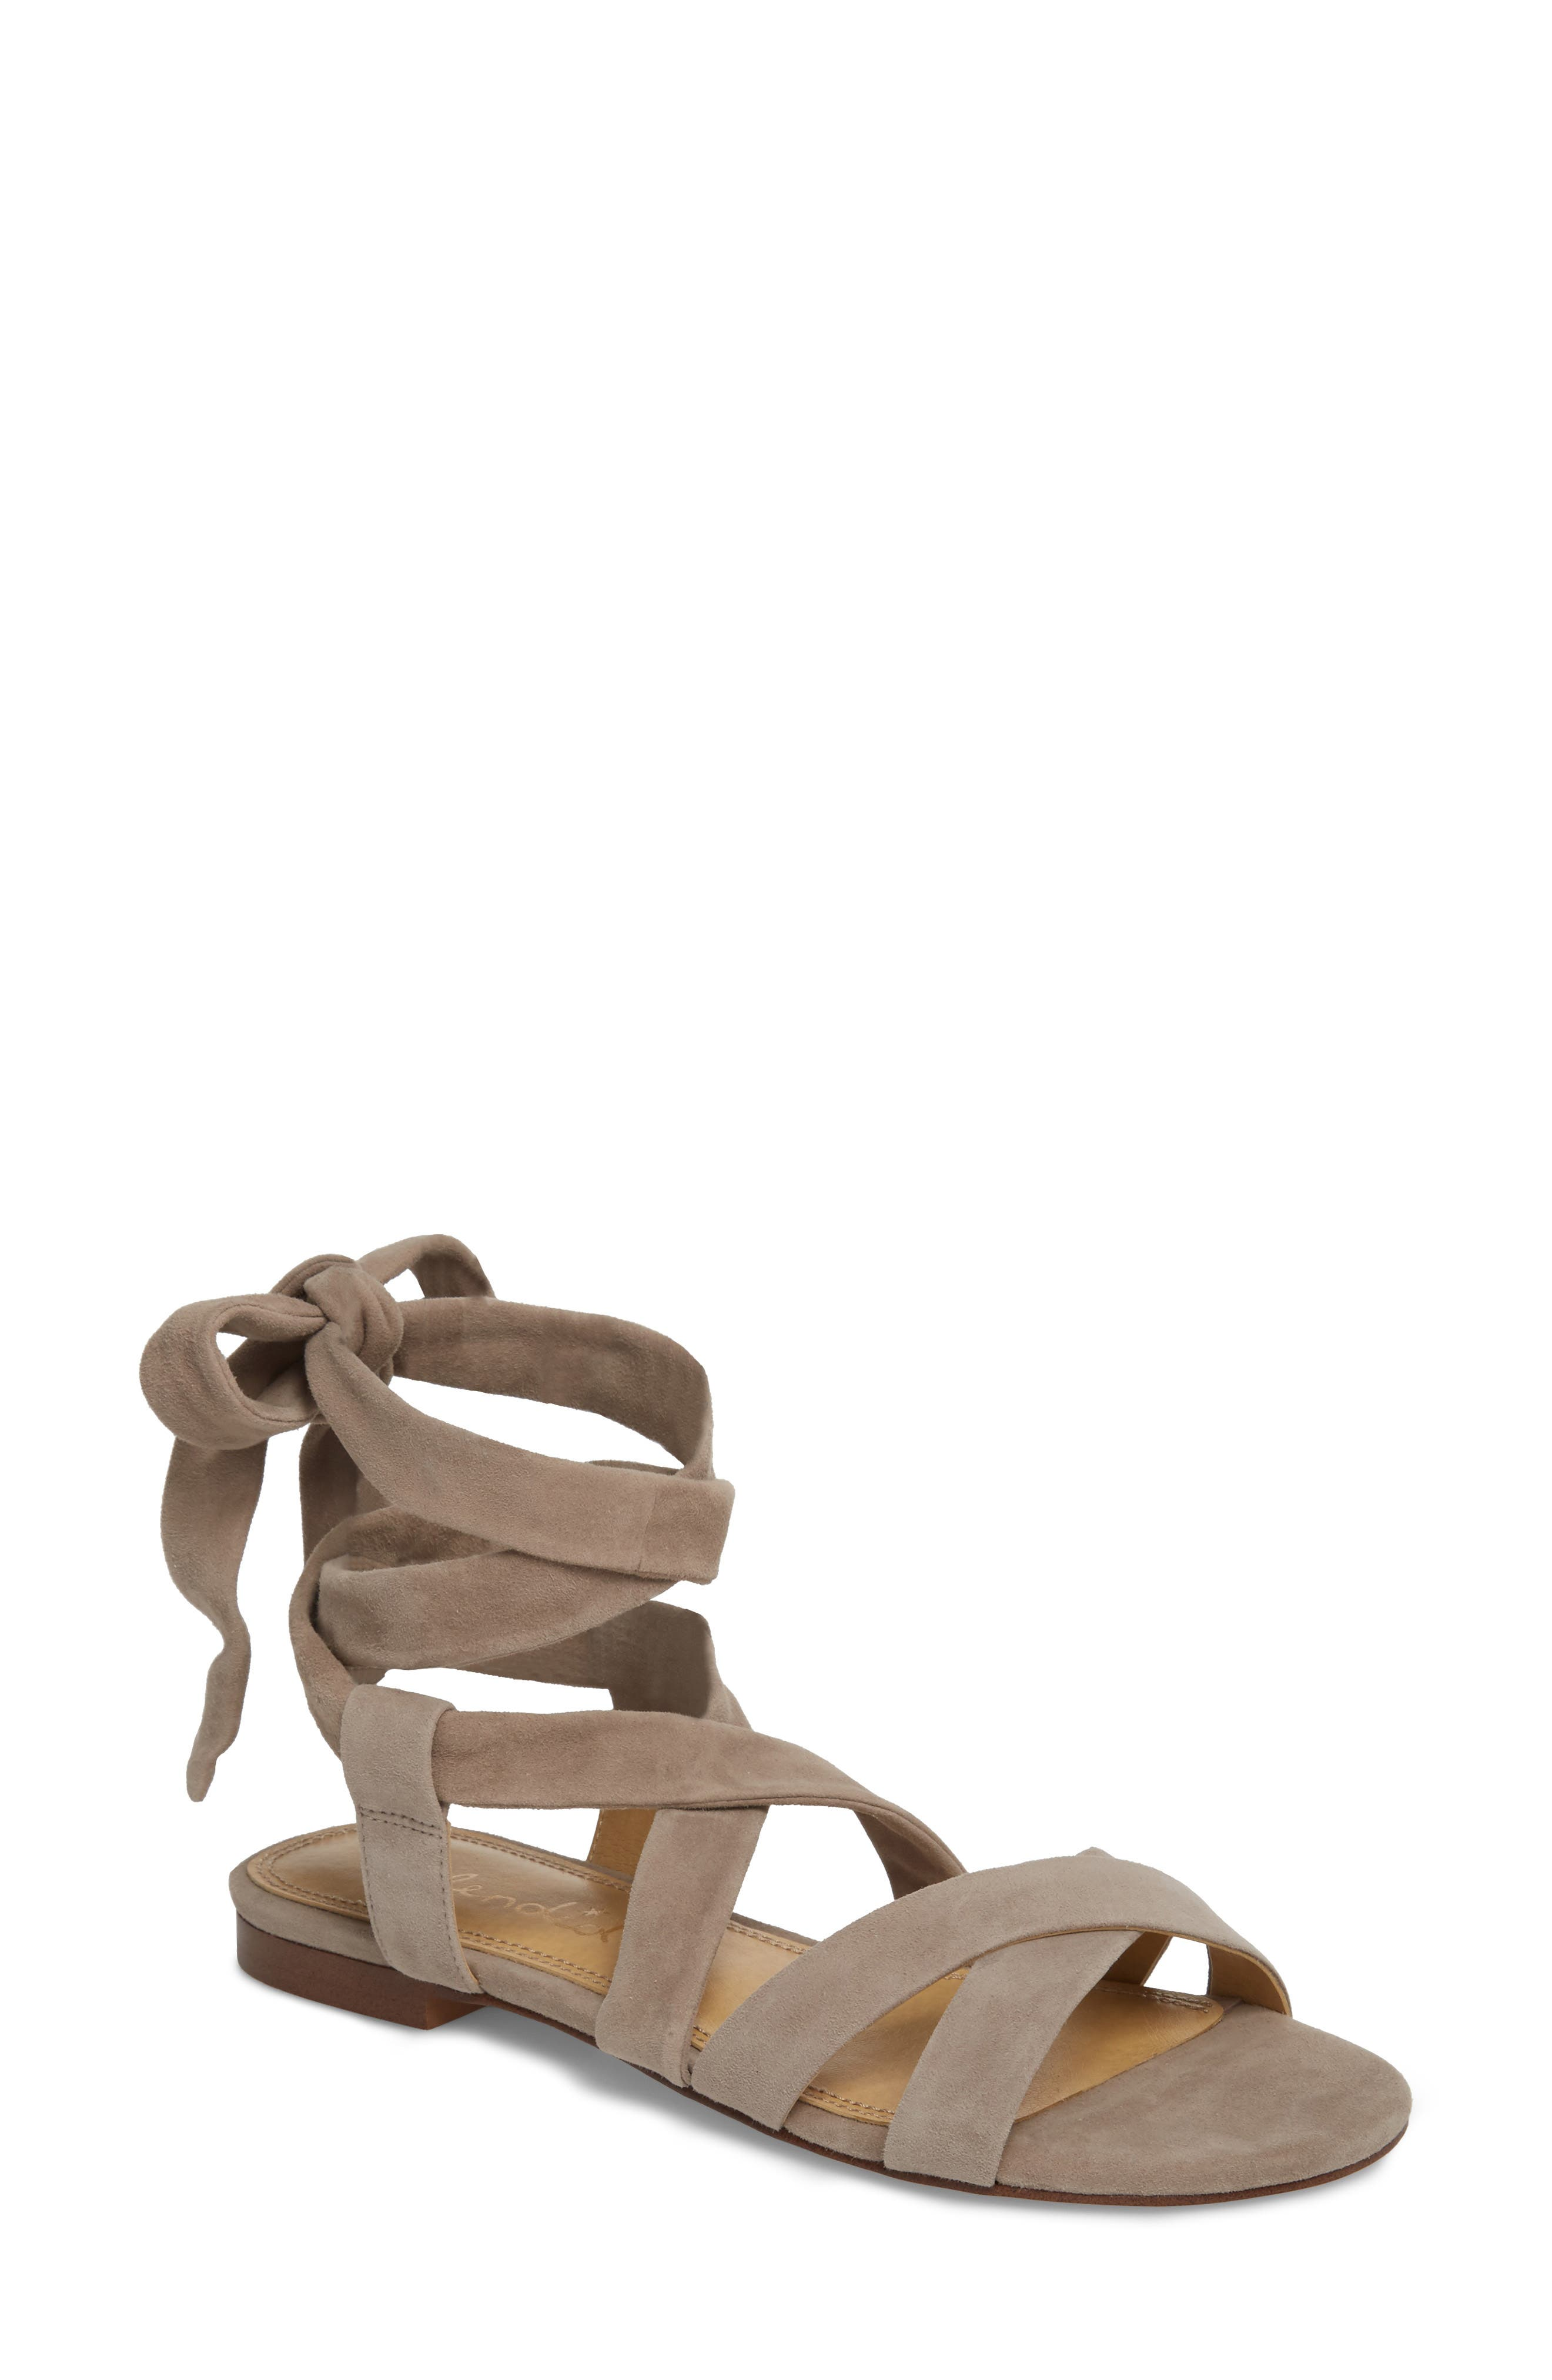 Feodora Ankle Wrap Sandal,                             Main thumbnail 1, color,                             TAUPE SUEDE